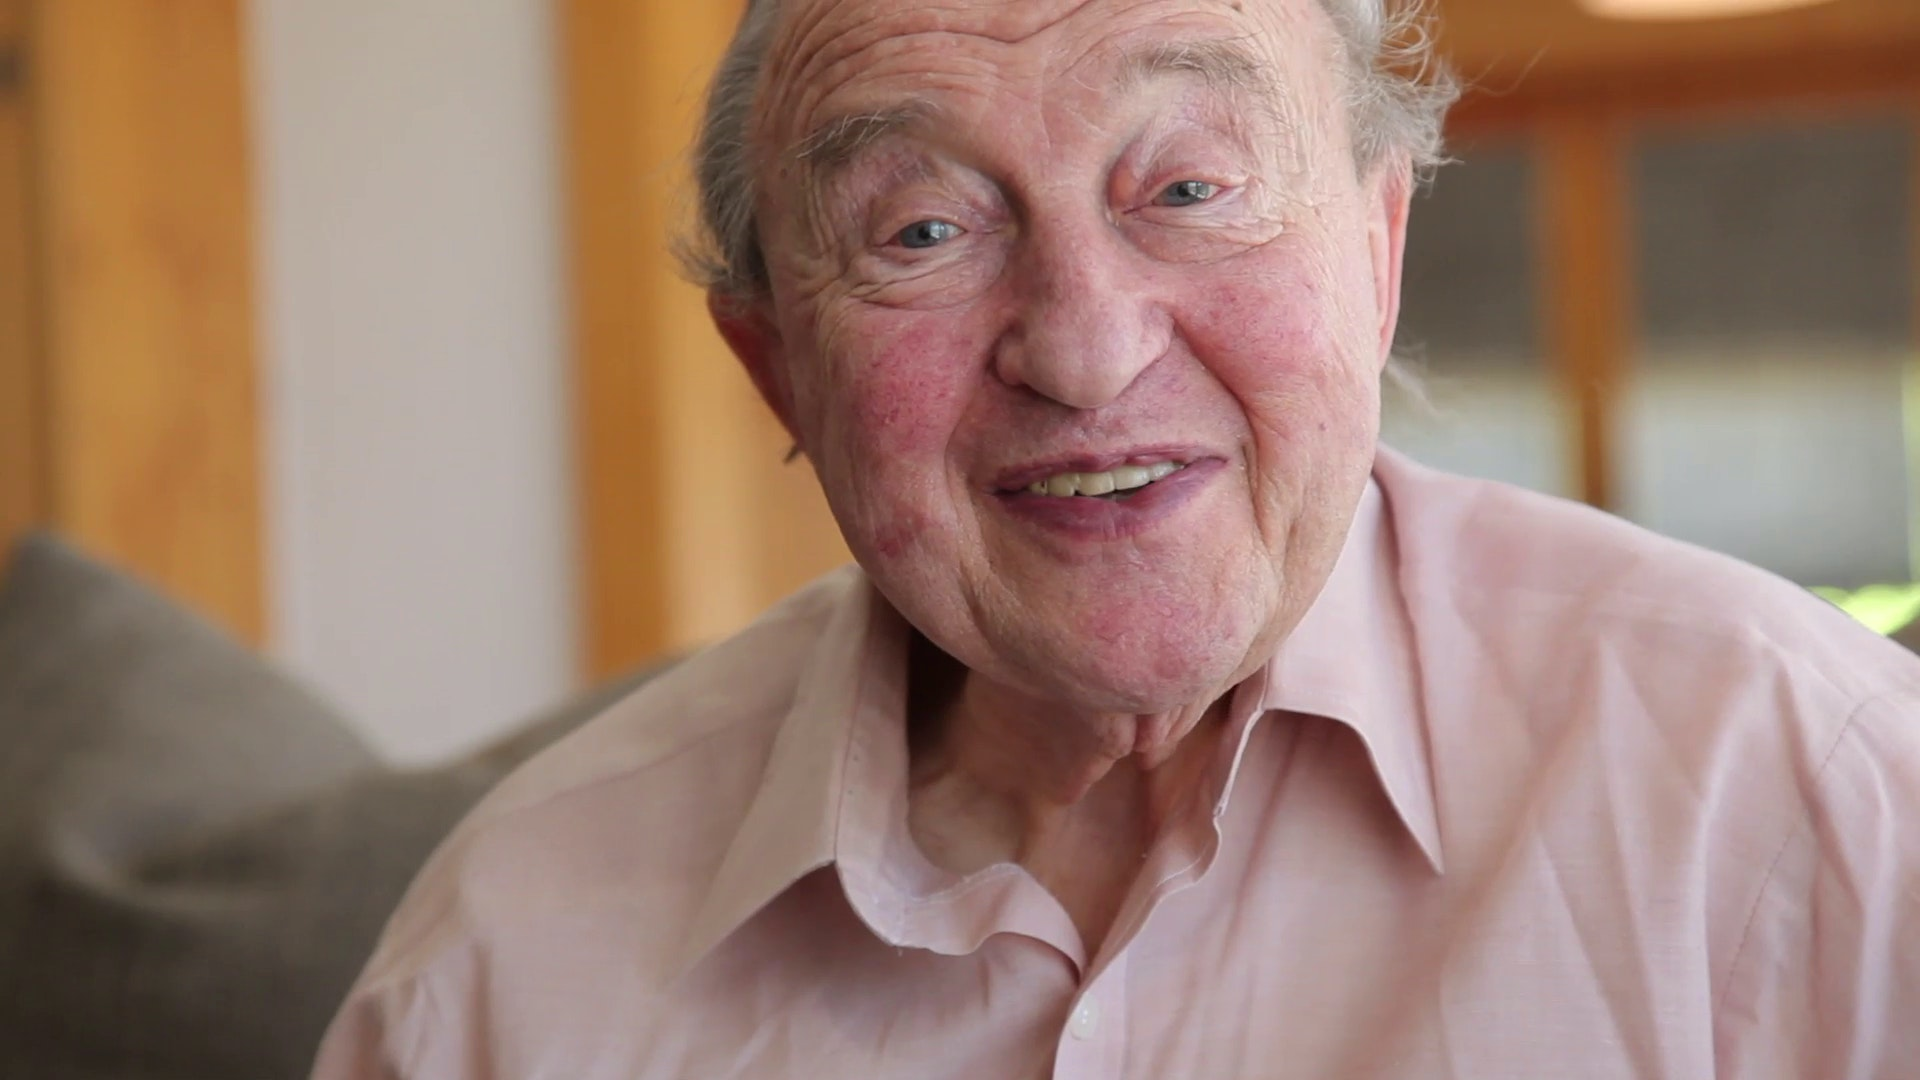 Menahem Pressler: Interview